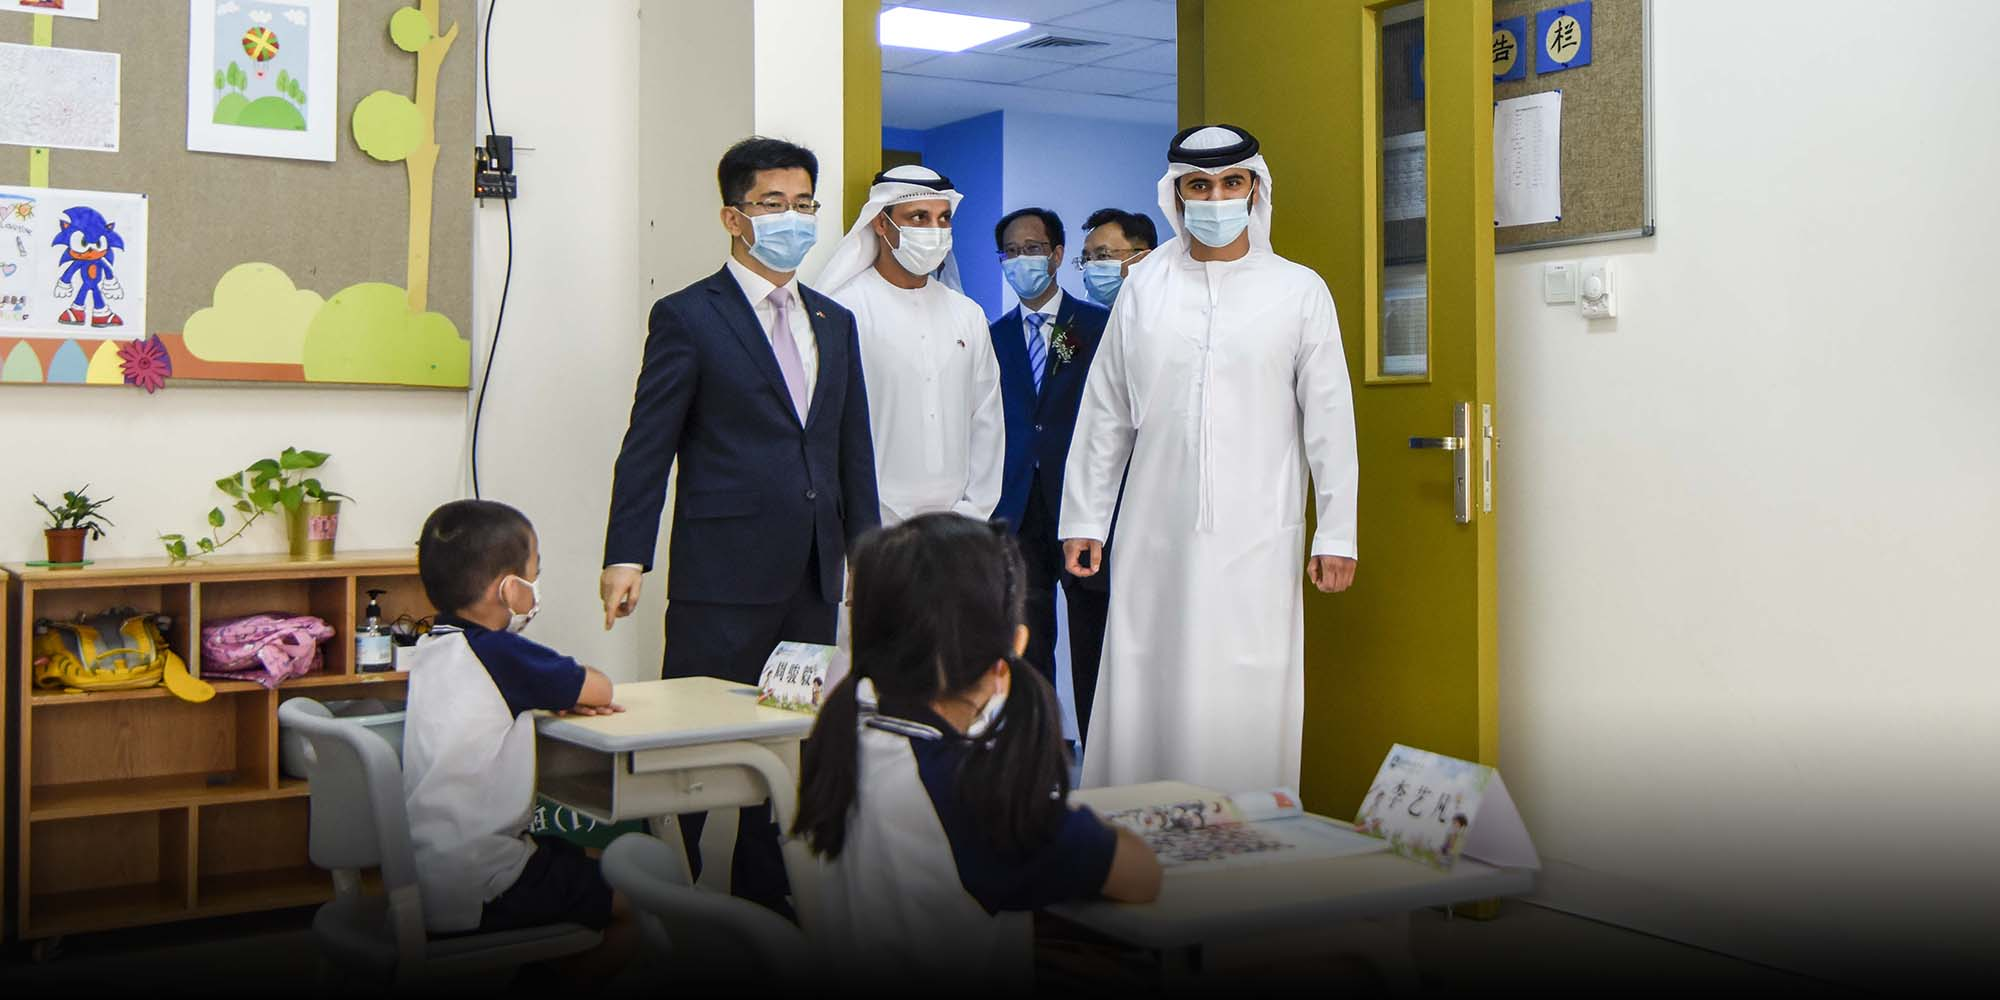 China's First International School Opens in Dubai